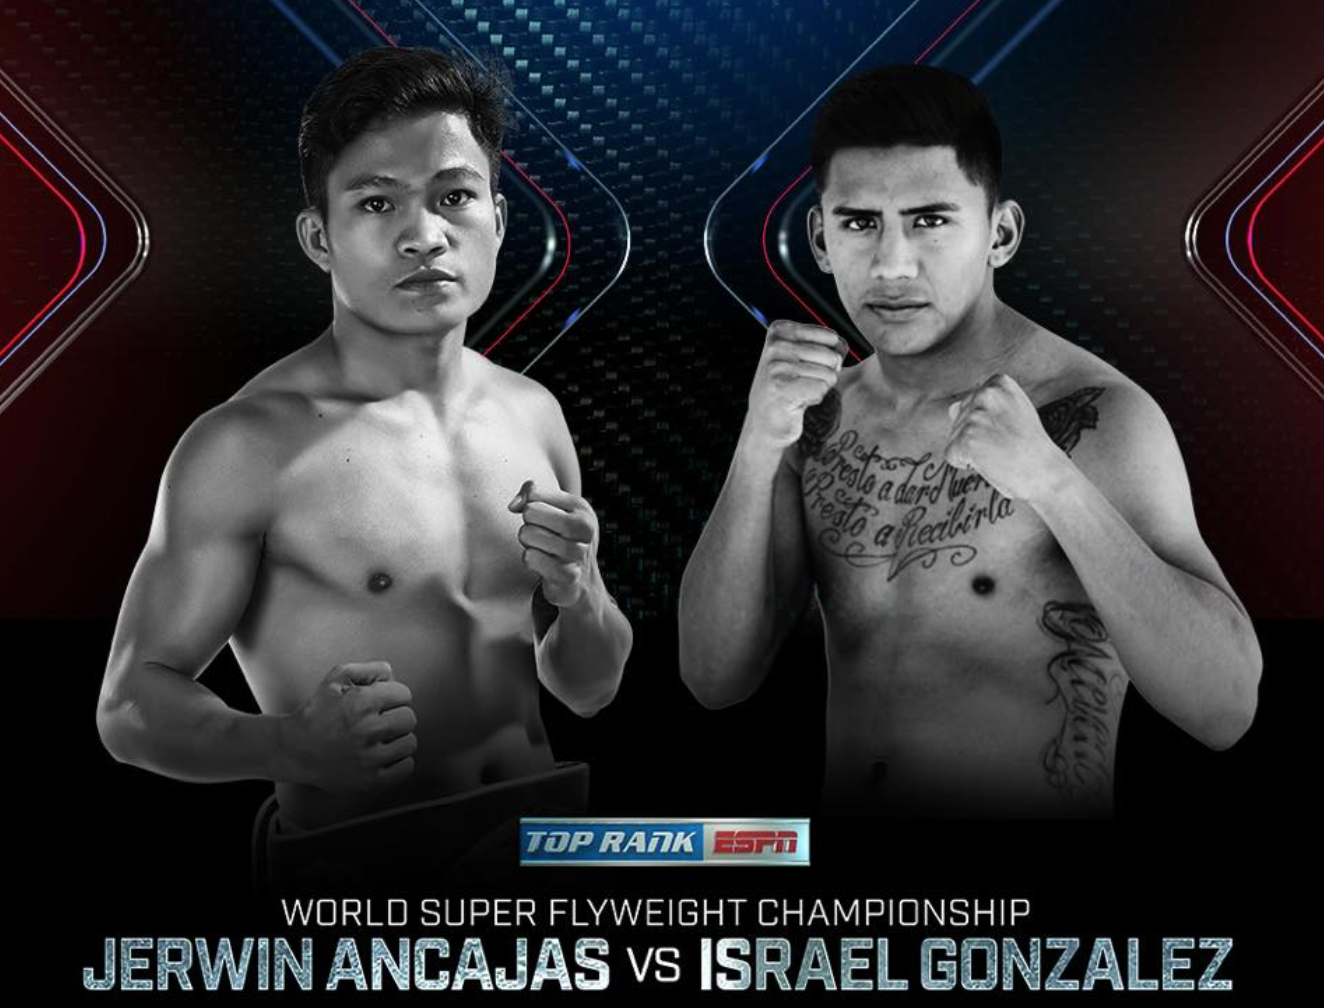 BOXING: Jerwin Ancajas VS Israel Gonzalez SHOW DESCRIPTION: With the power of the punch and the heart of a champion, IBF Super Flyweight Champion, Jerwin Ancajas is ready to conquer […]